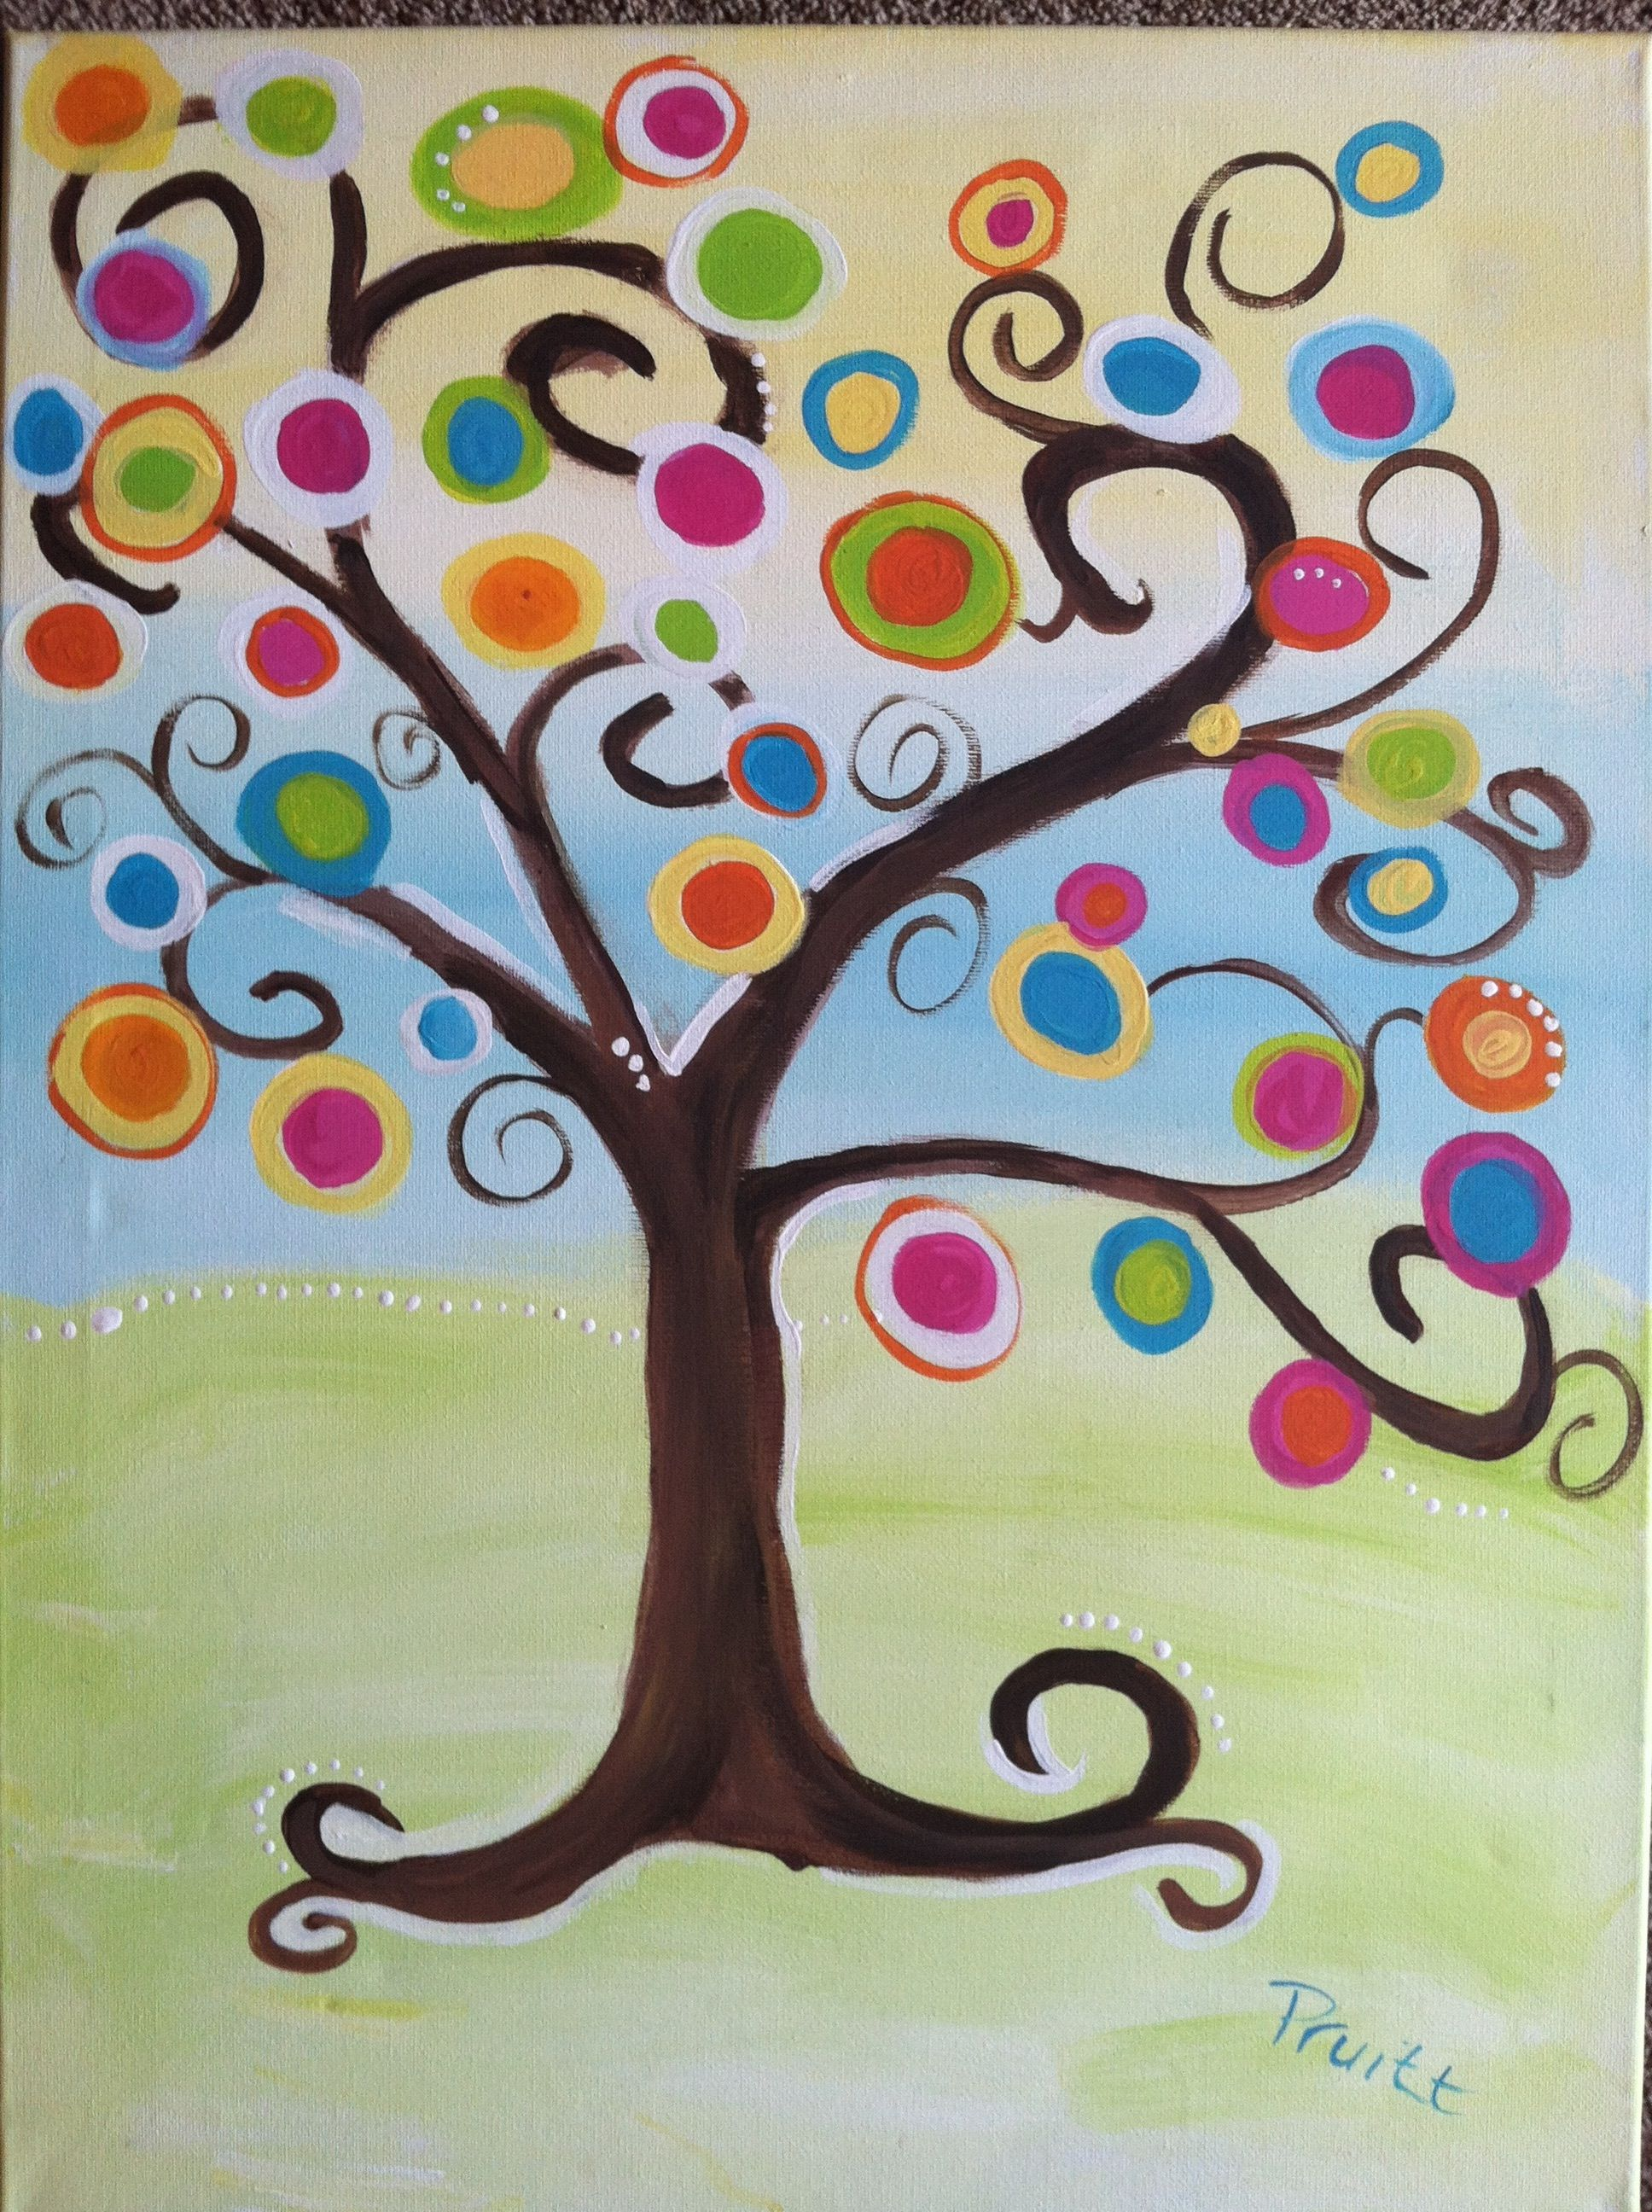 Kandinsky Circles Tree Painting Kandinsky circles tree